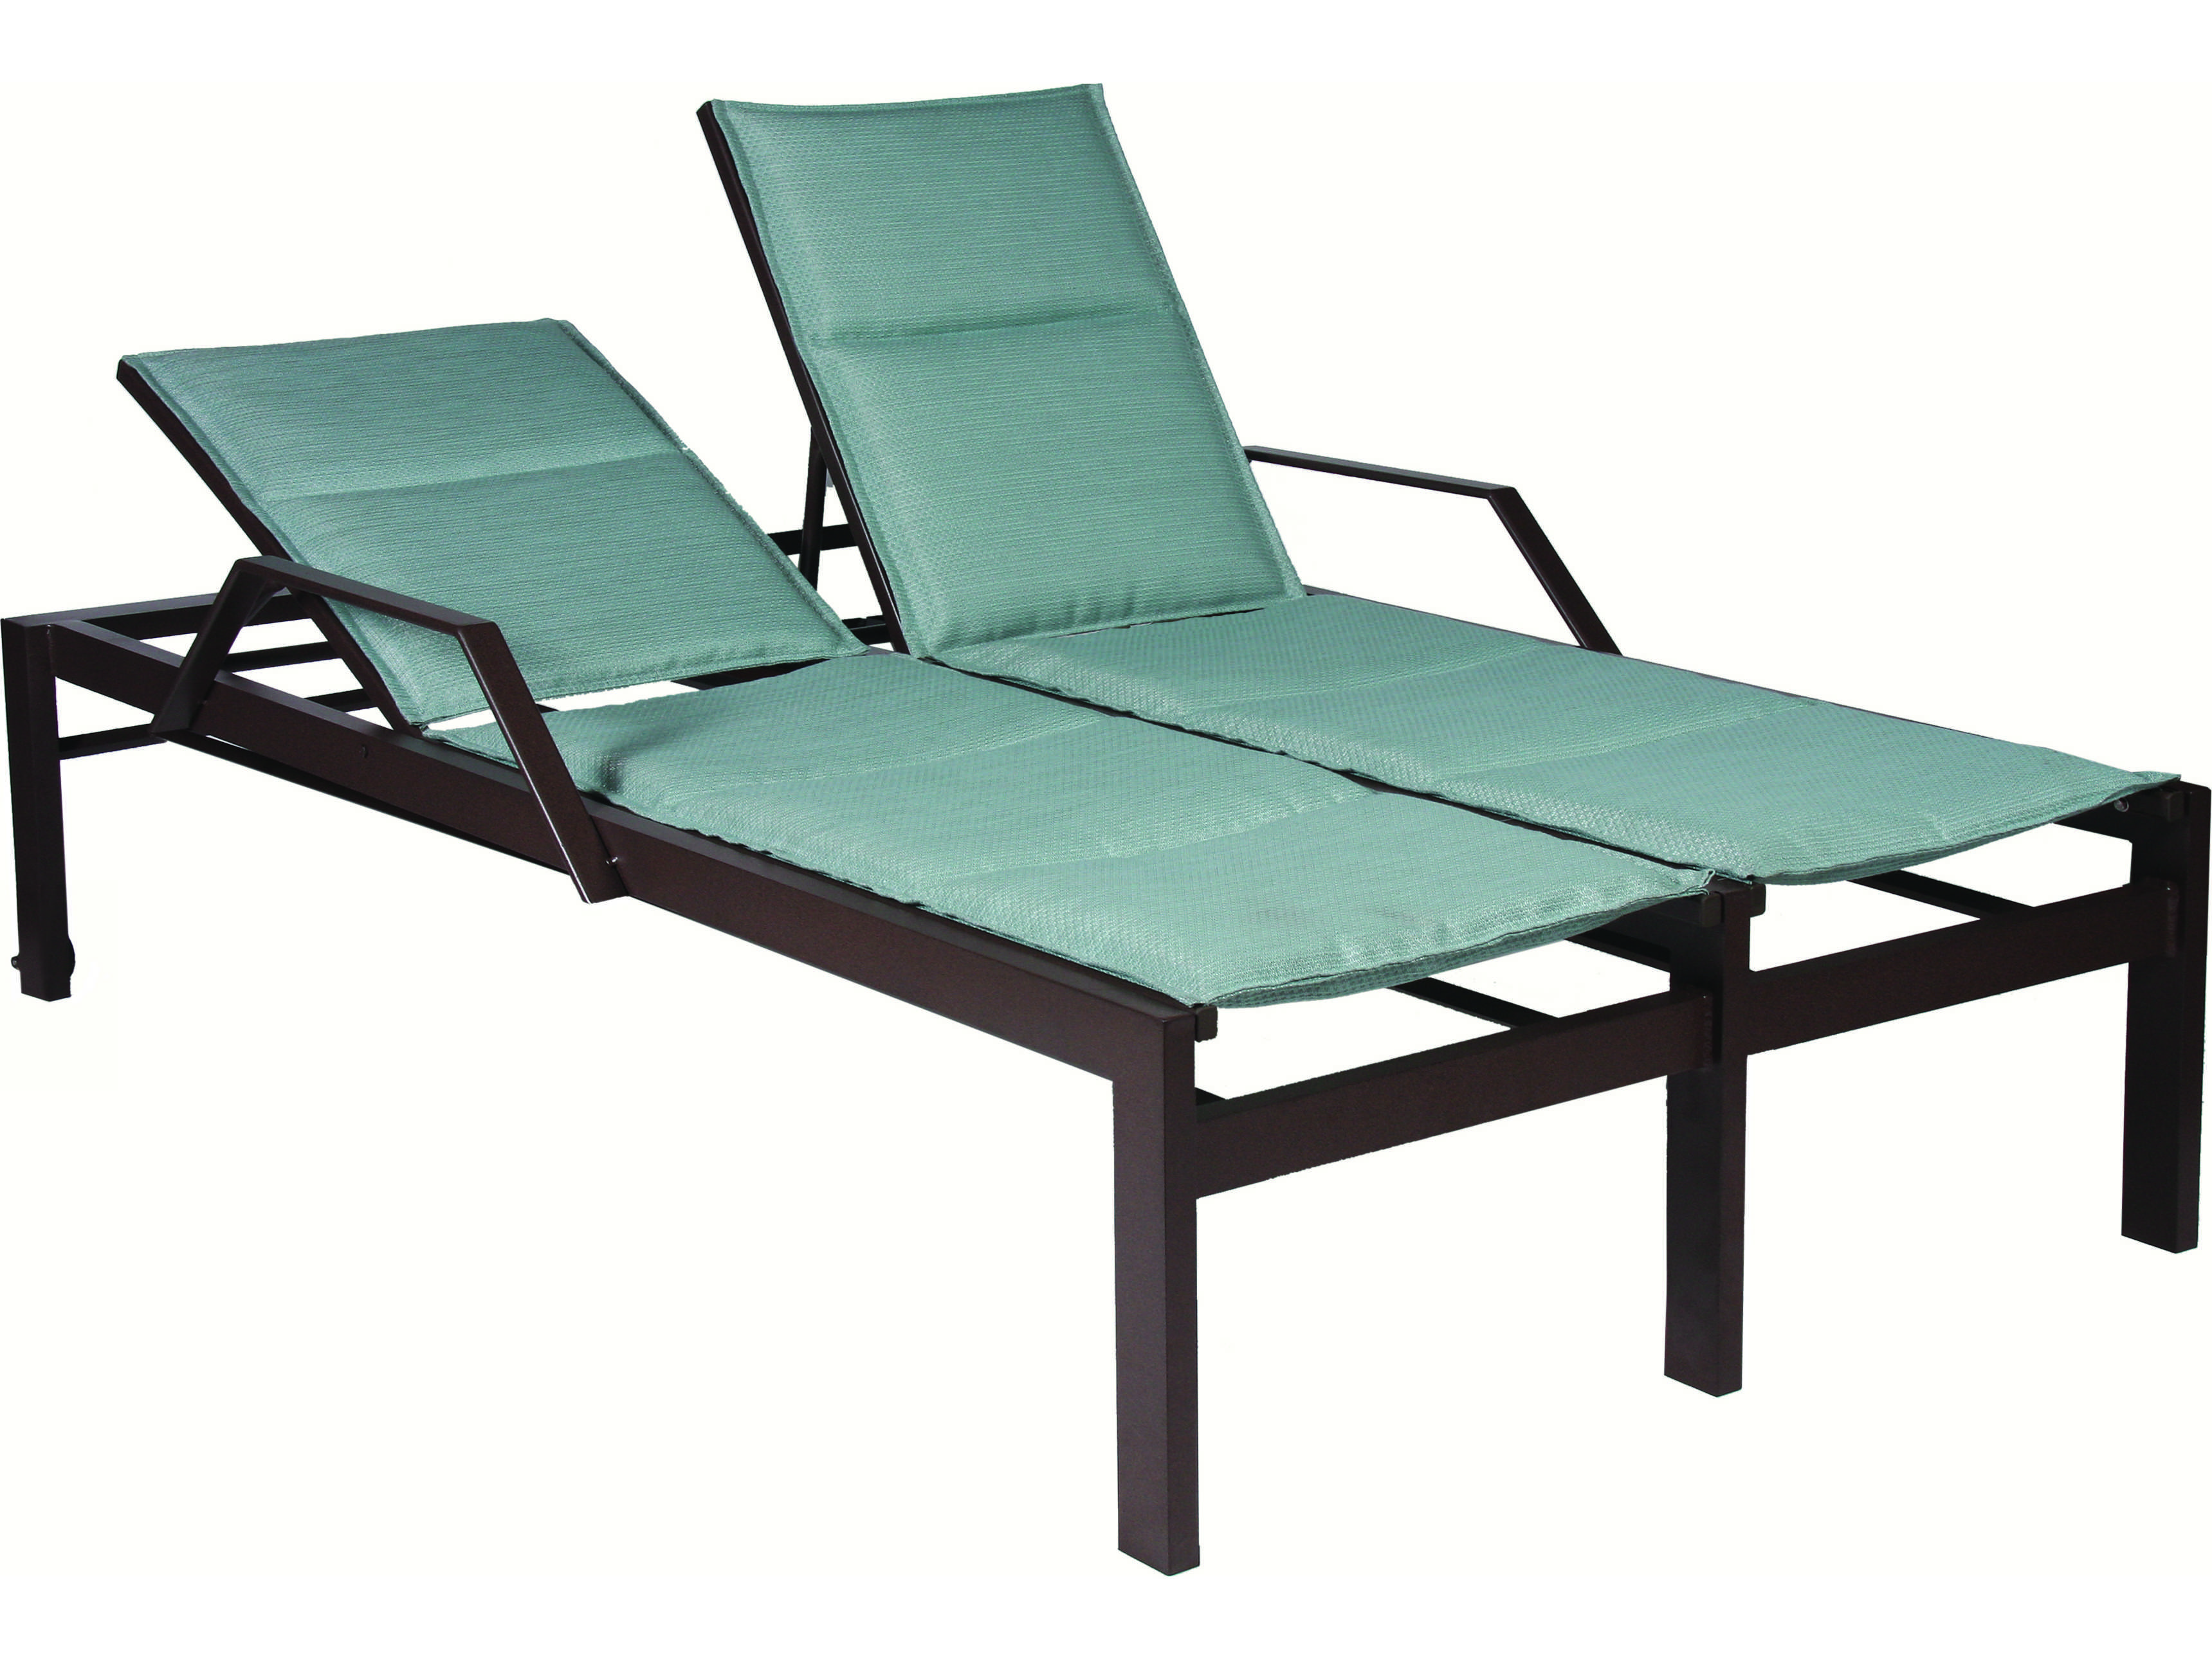 lounge chair replacement straps windsor rocking cushions suncoast vectra bold sling cast aluminum double chaise